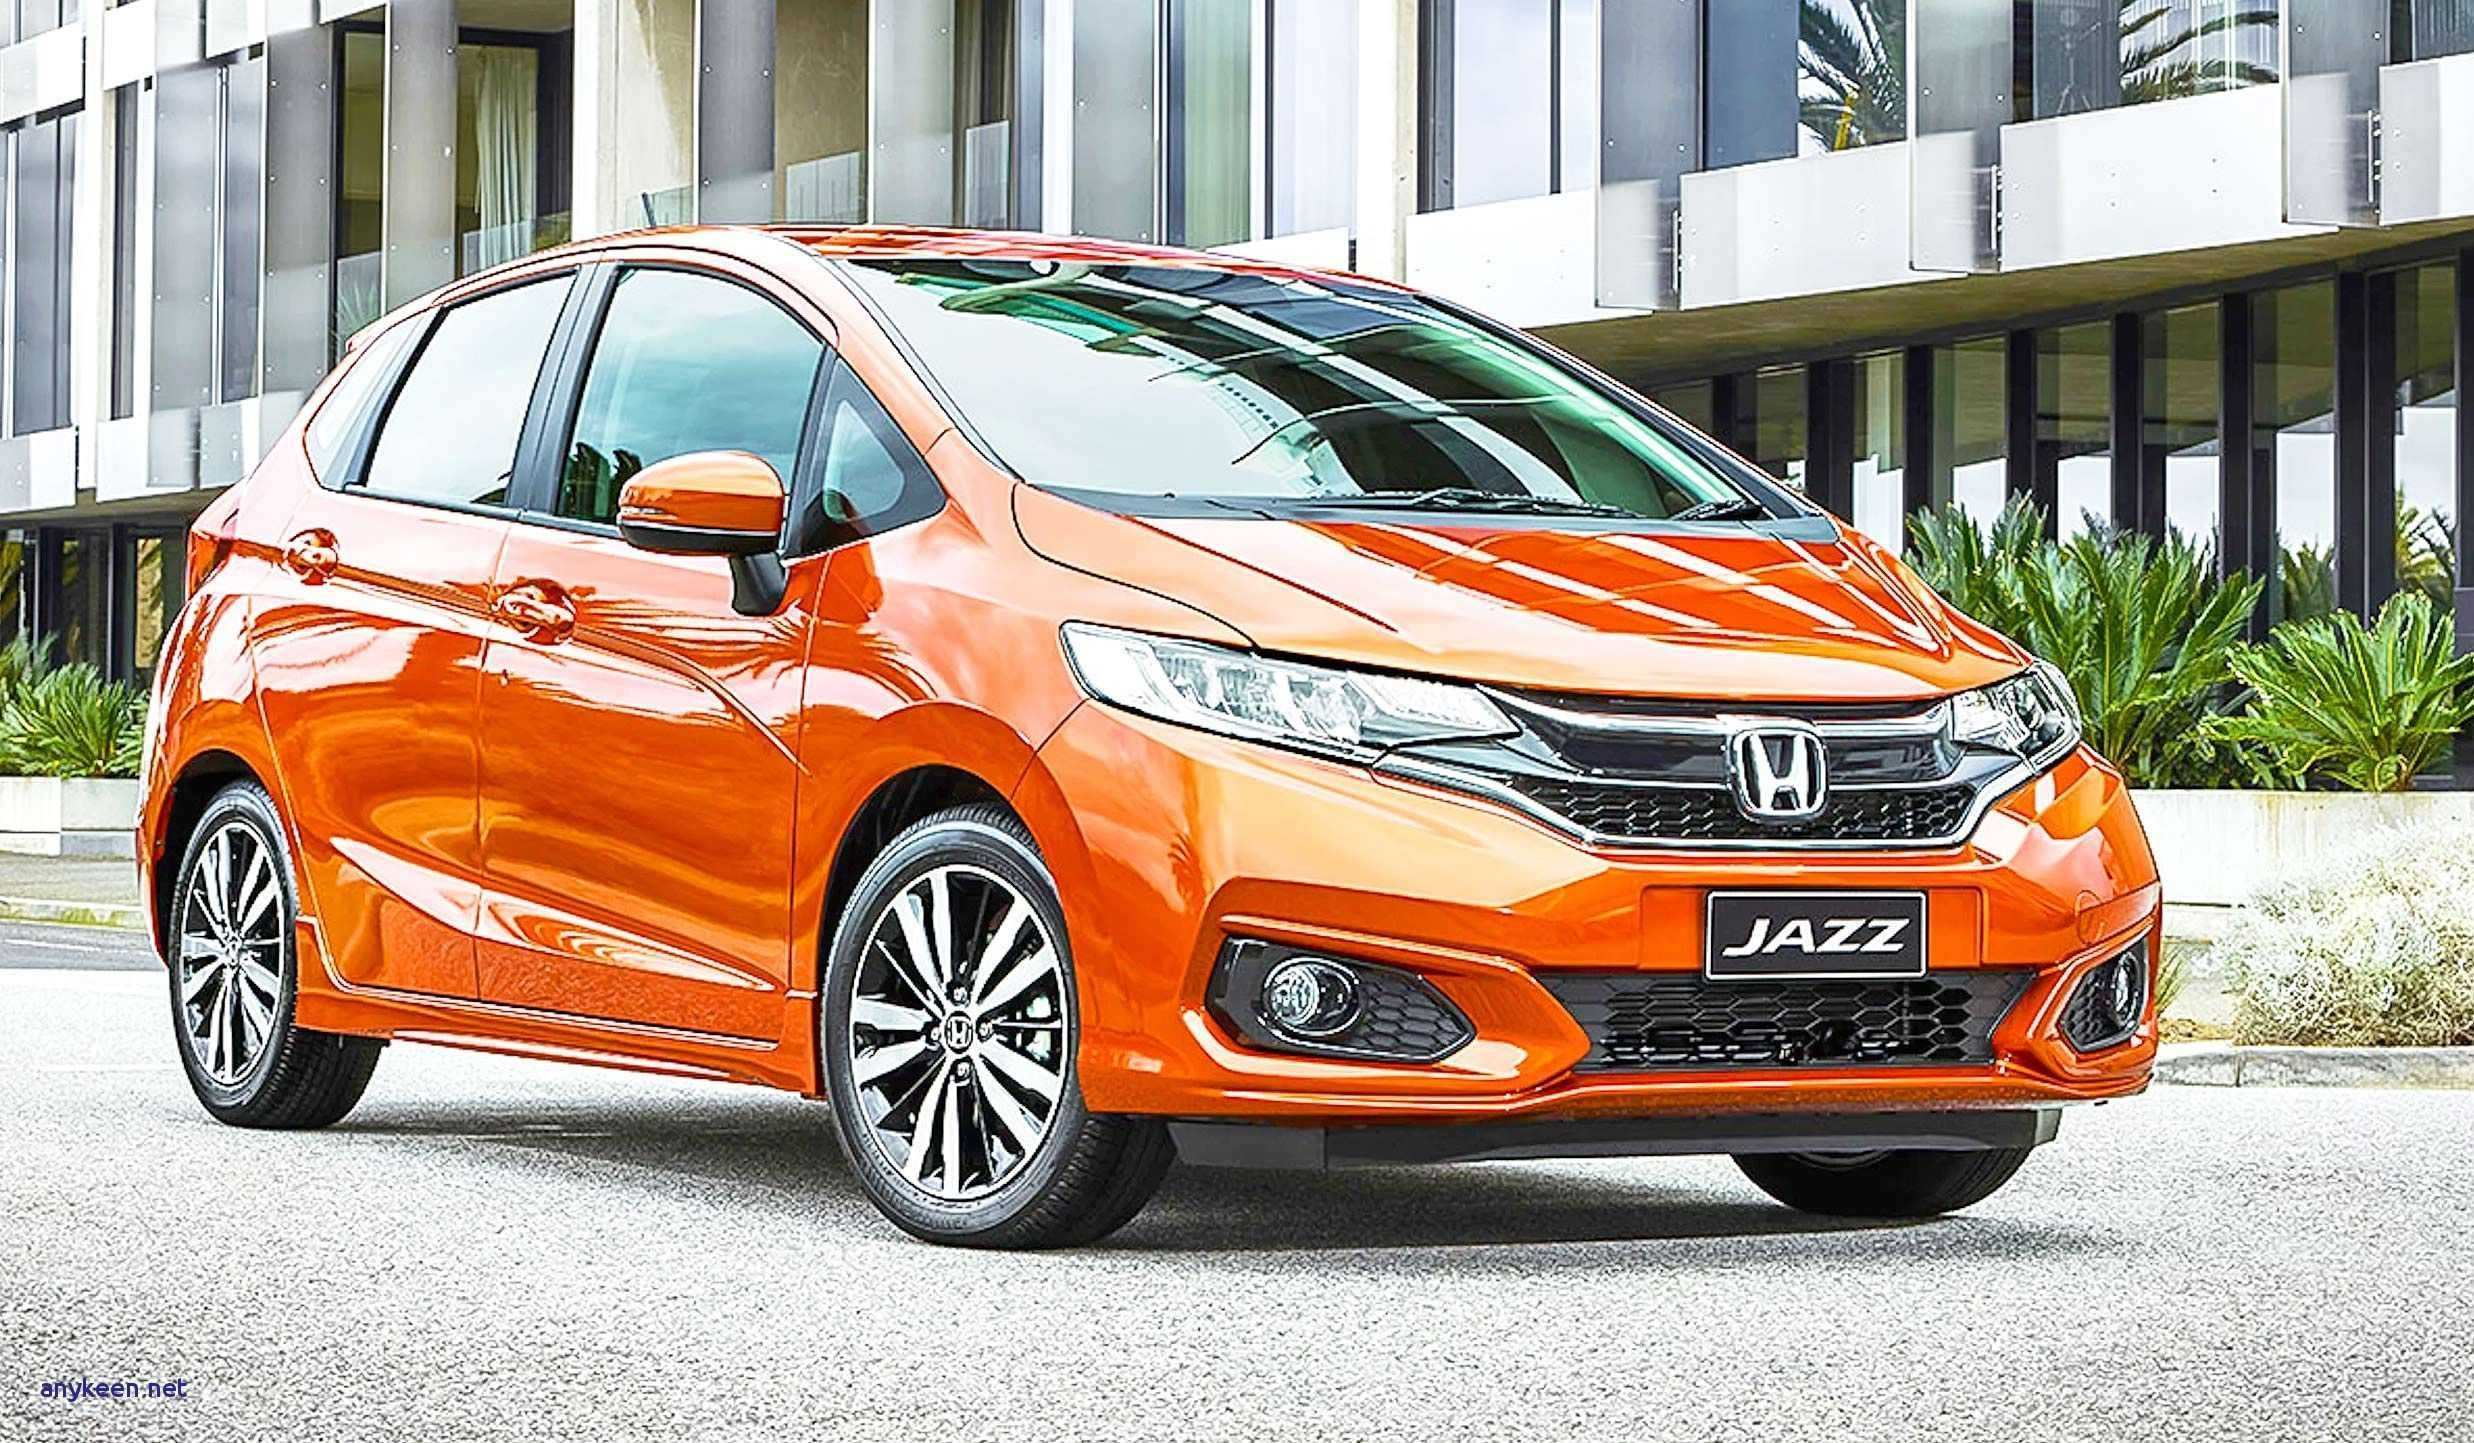 93 Concept of Best Honda Jazz 2019 Australia First Drive Exterior and Interior for Best Honda Jazz 2019 Australia First Drive